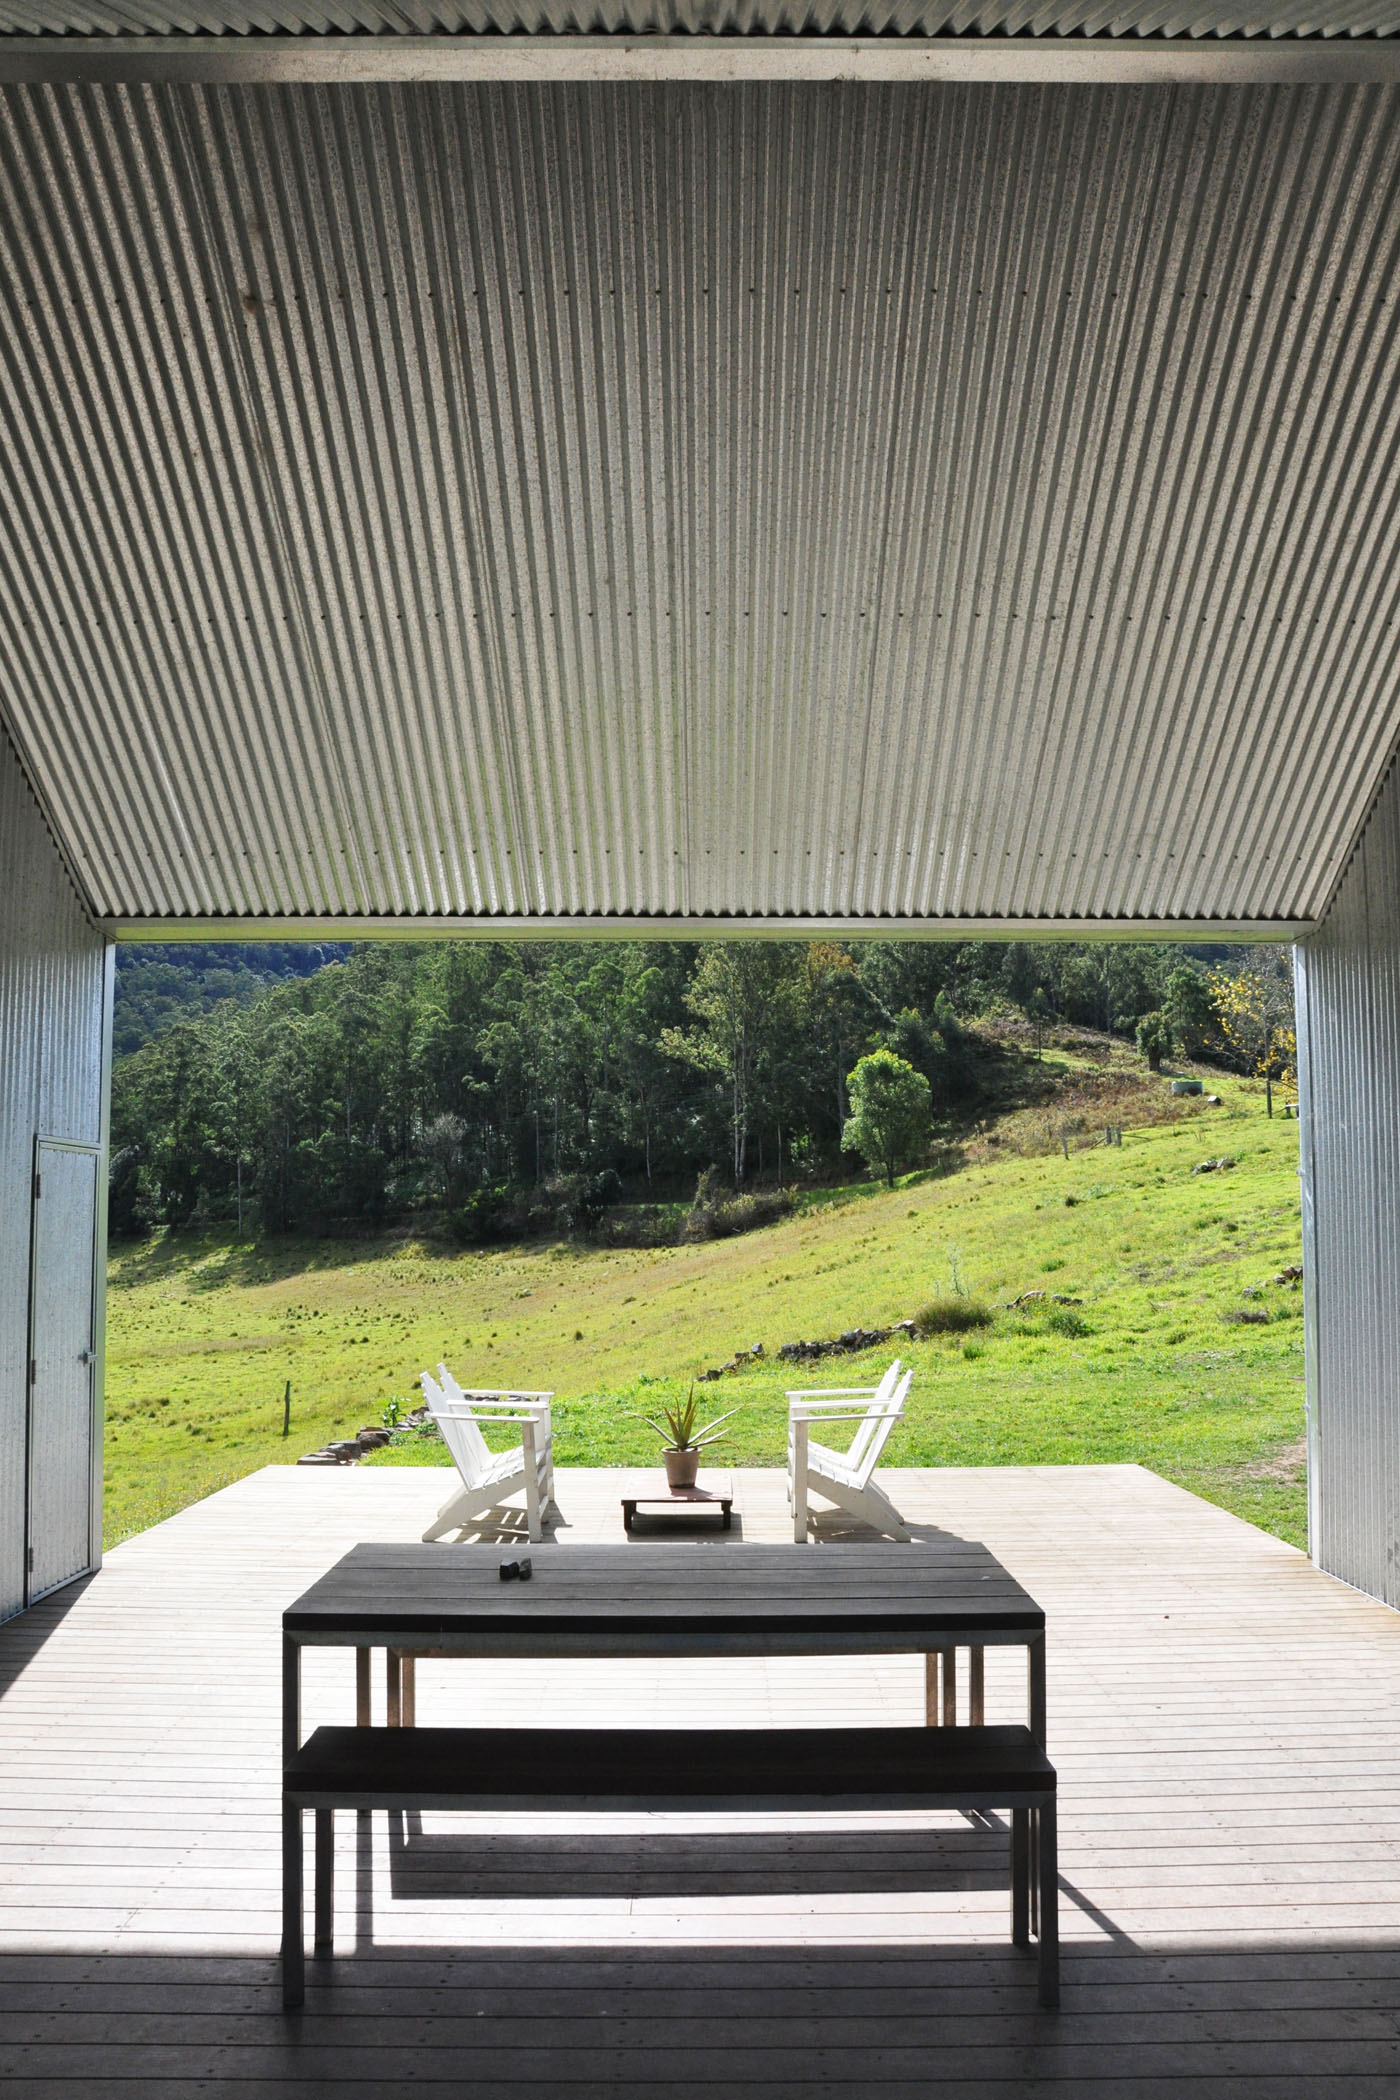 Gloucester Farmhouse by award winning residential architecture firm Sam Crawford Architects. View to the hills landscape from the intermediate deck